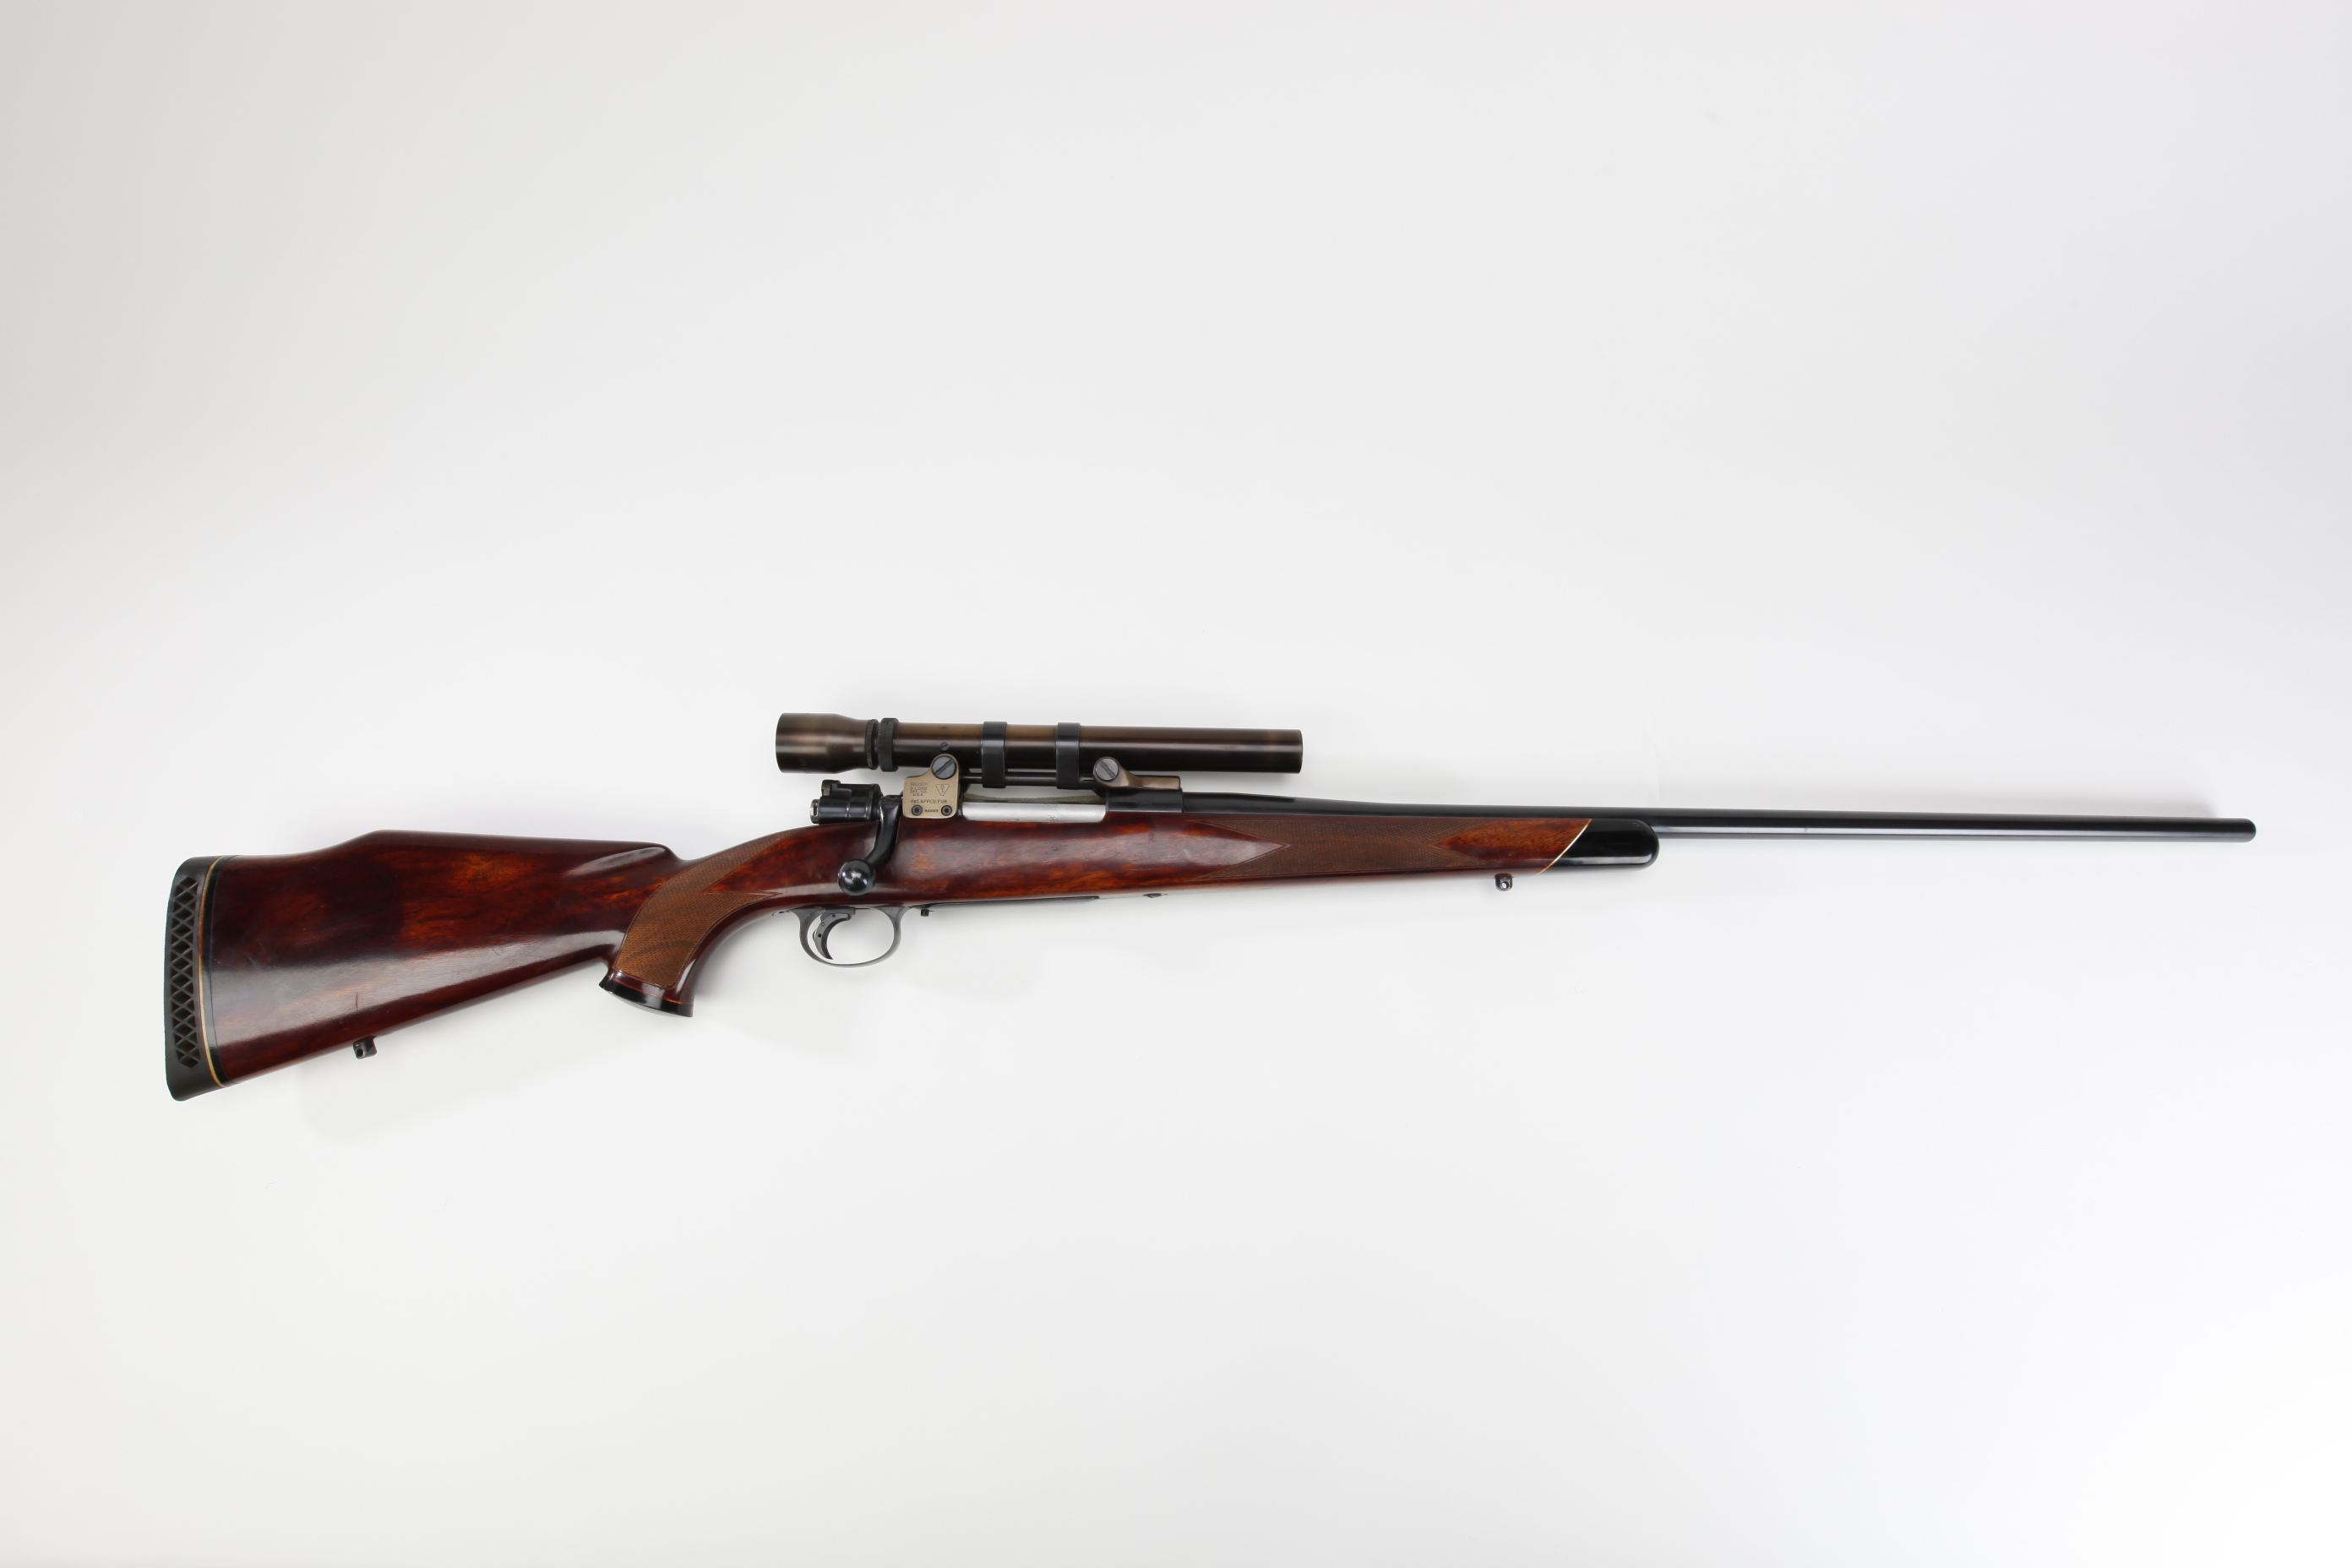 Weatherby FN Mauser Bolt Action Rifle with telescopic sight